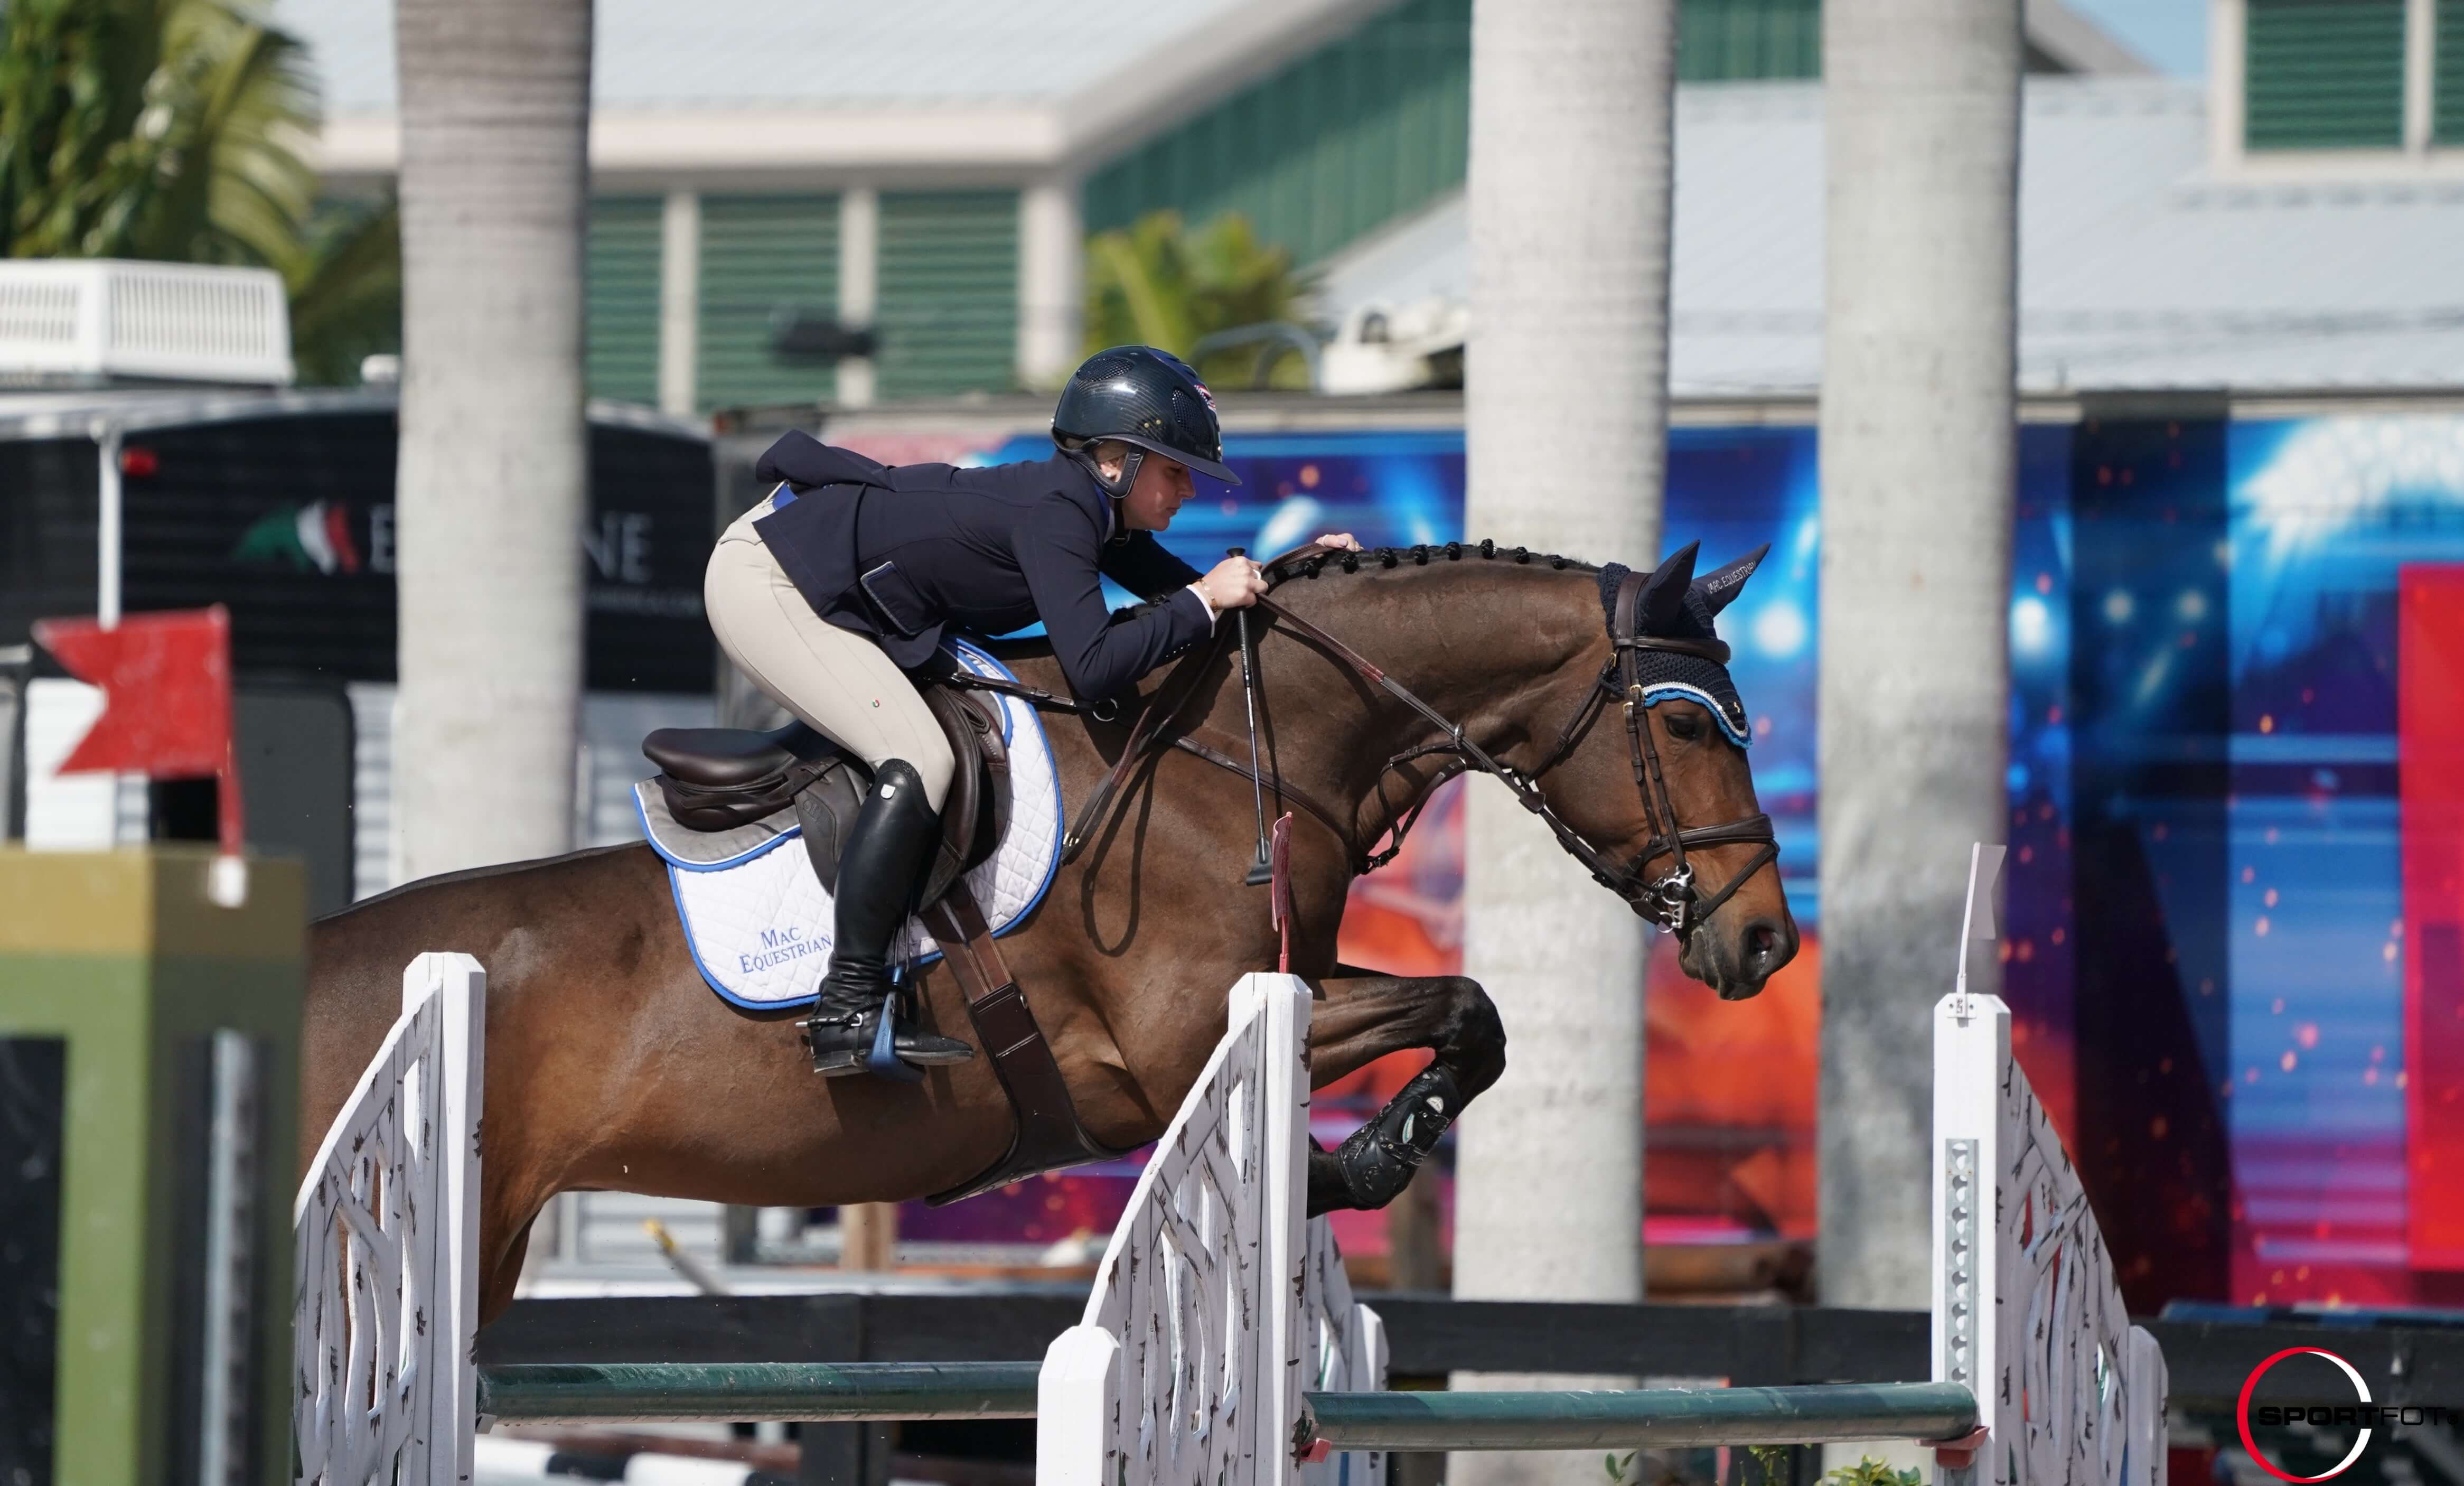 LA BELLE doing well at WEF!